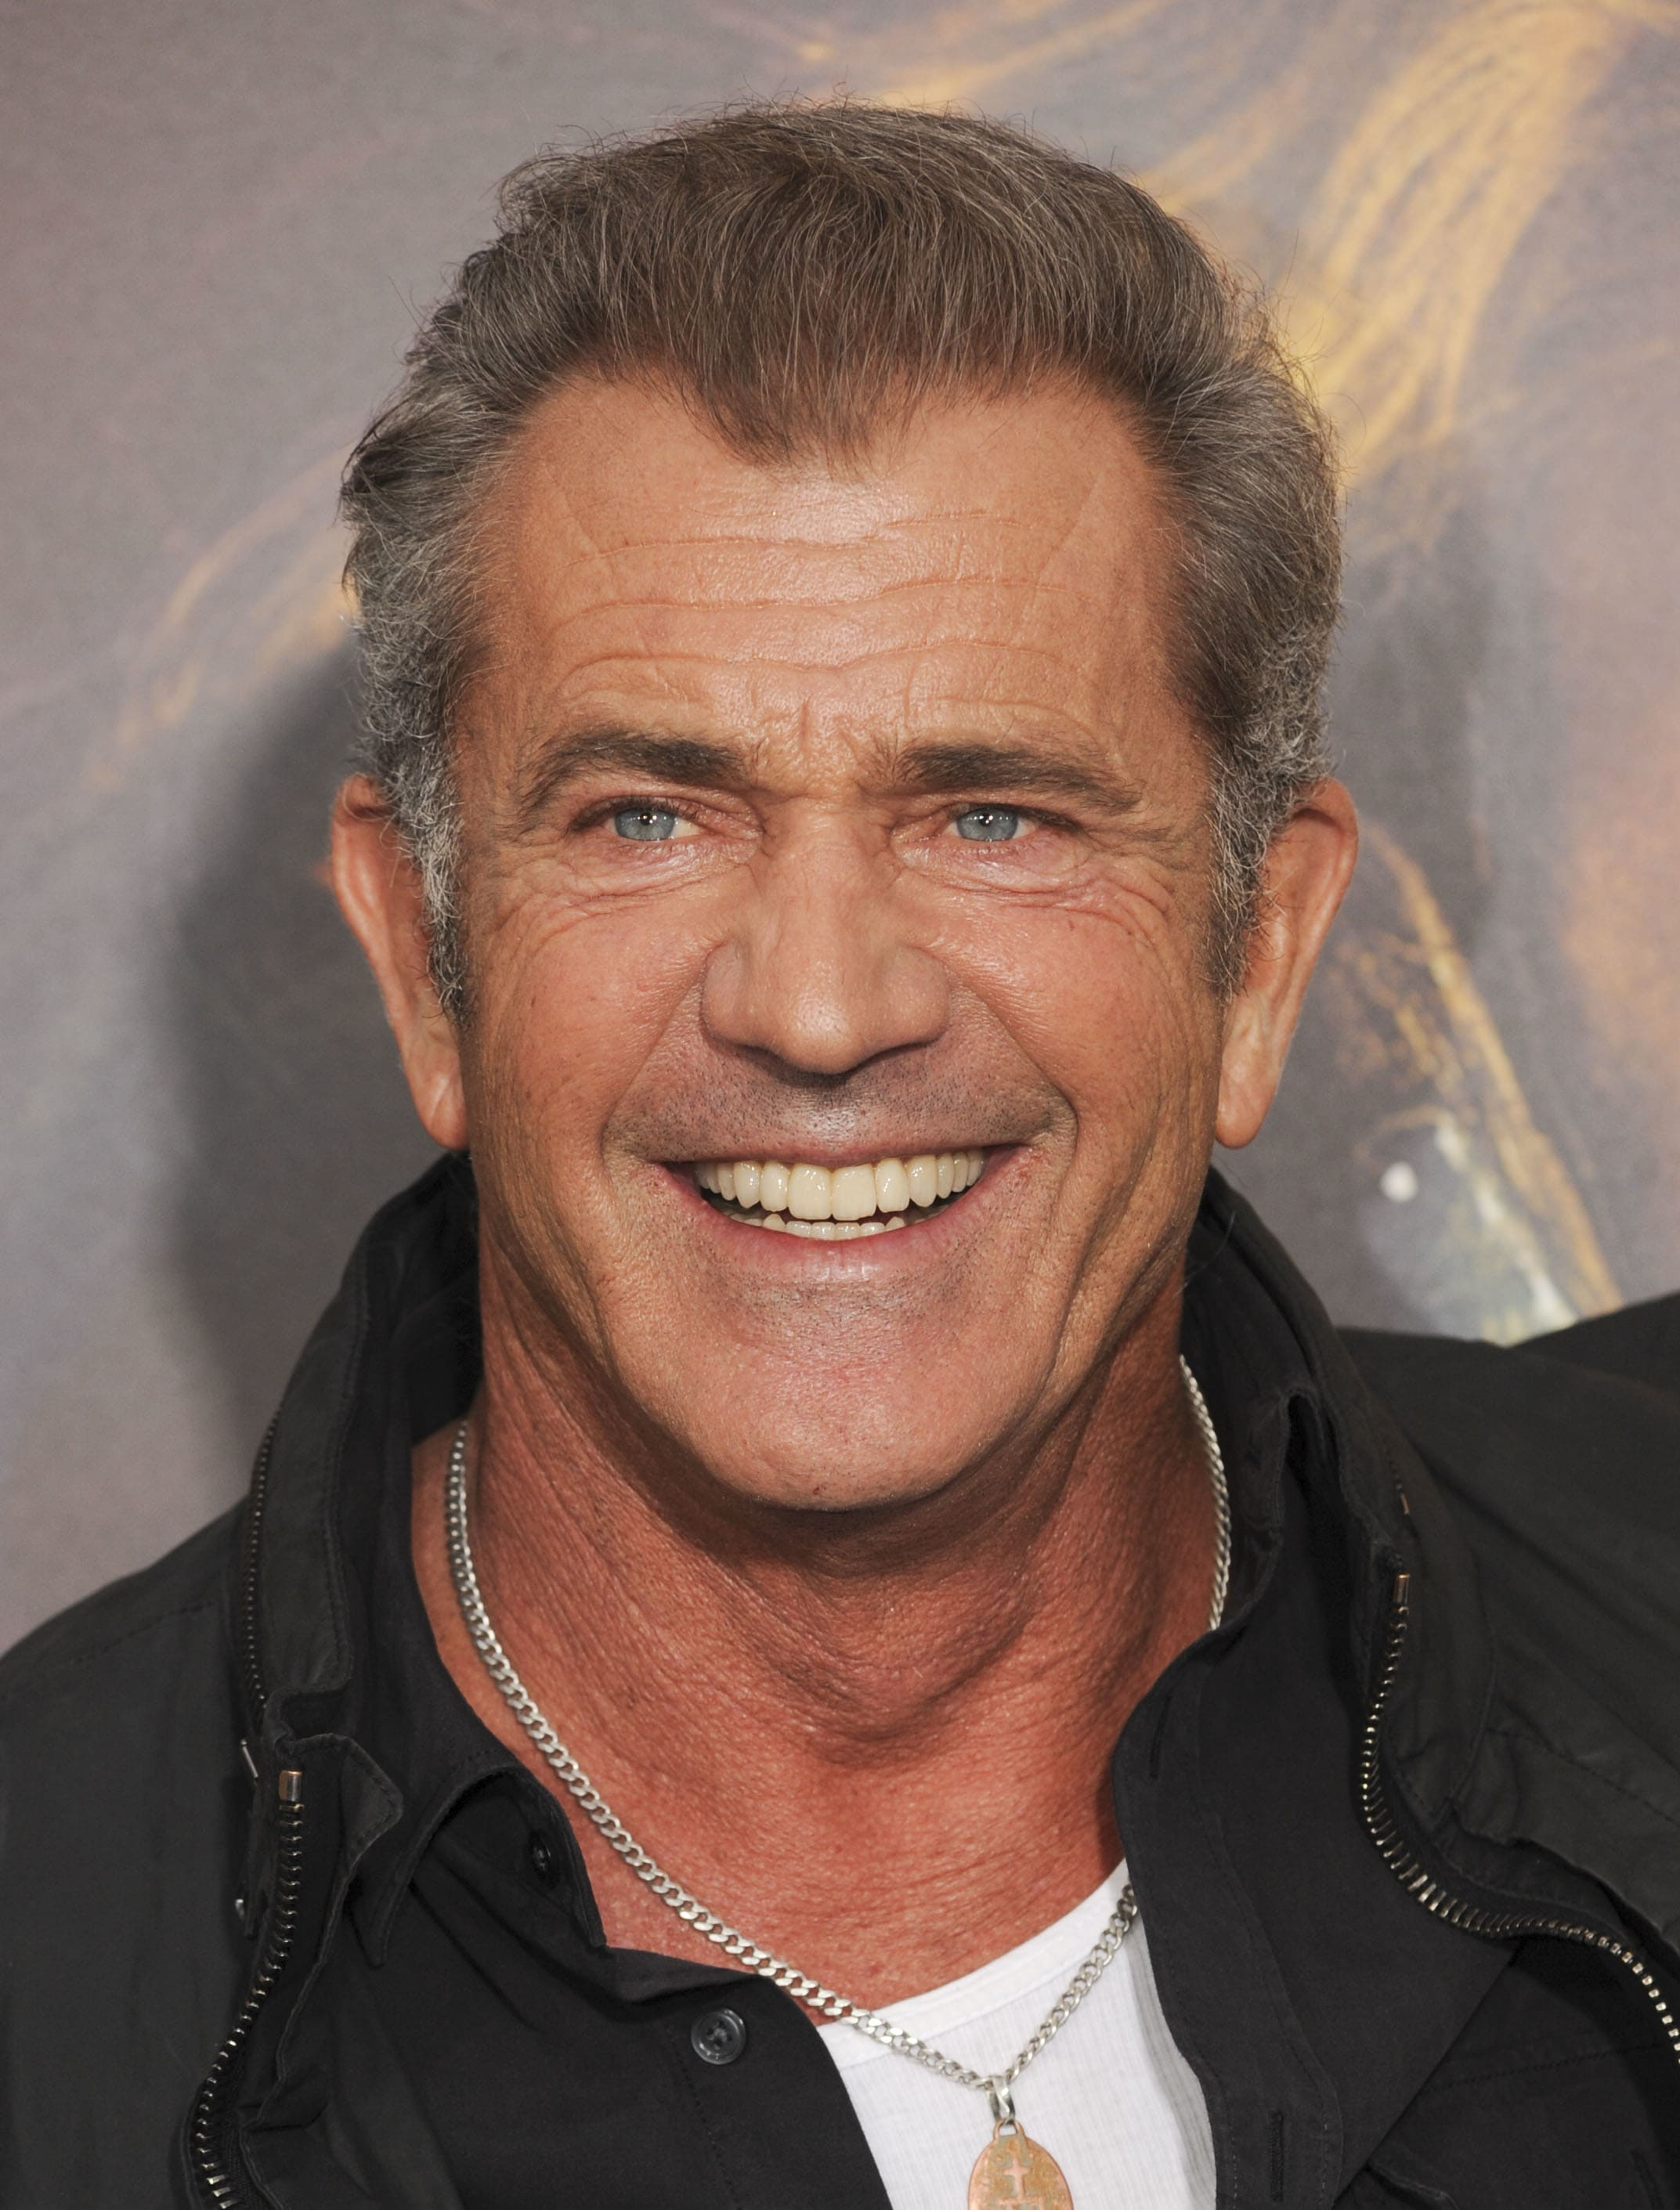 Mel gibson drunk at whole foods with fork in mouth the hollywood mel gibson drunk at whole foods with fork in mouth the hollywood gossip thecheapjerseys Images